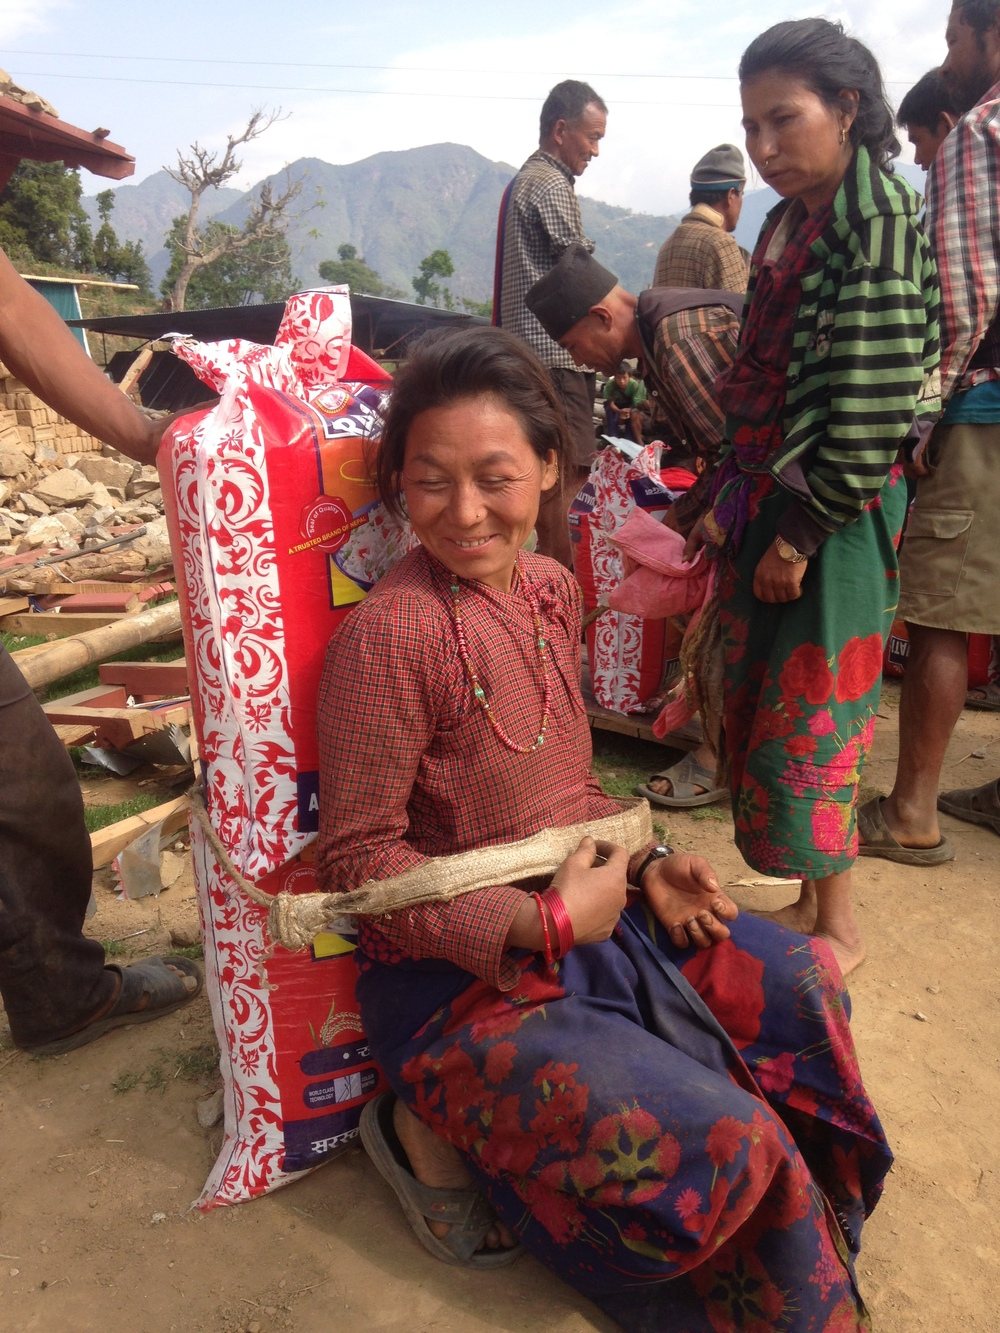 Another woman preparing to shoulder a heavy bag of rice.